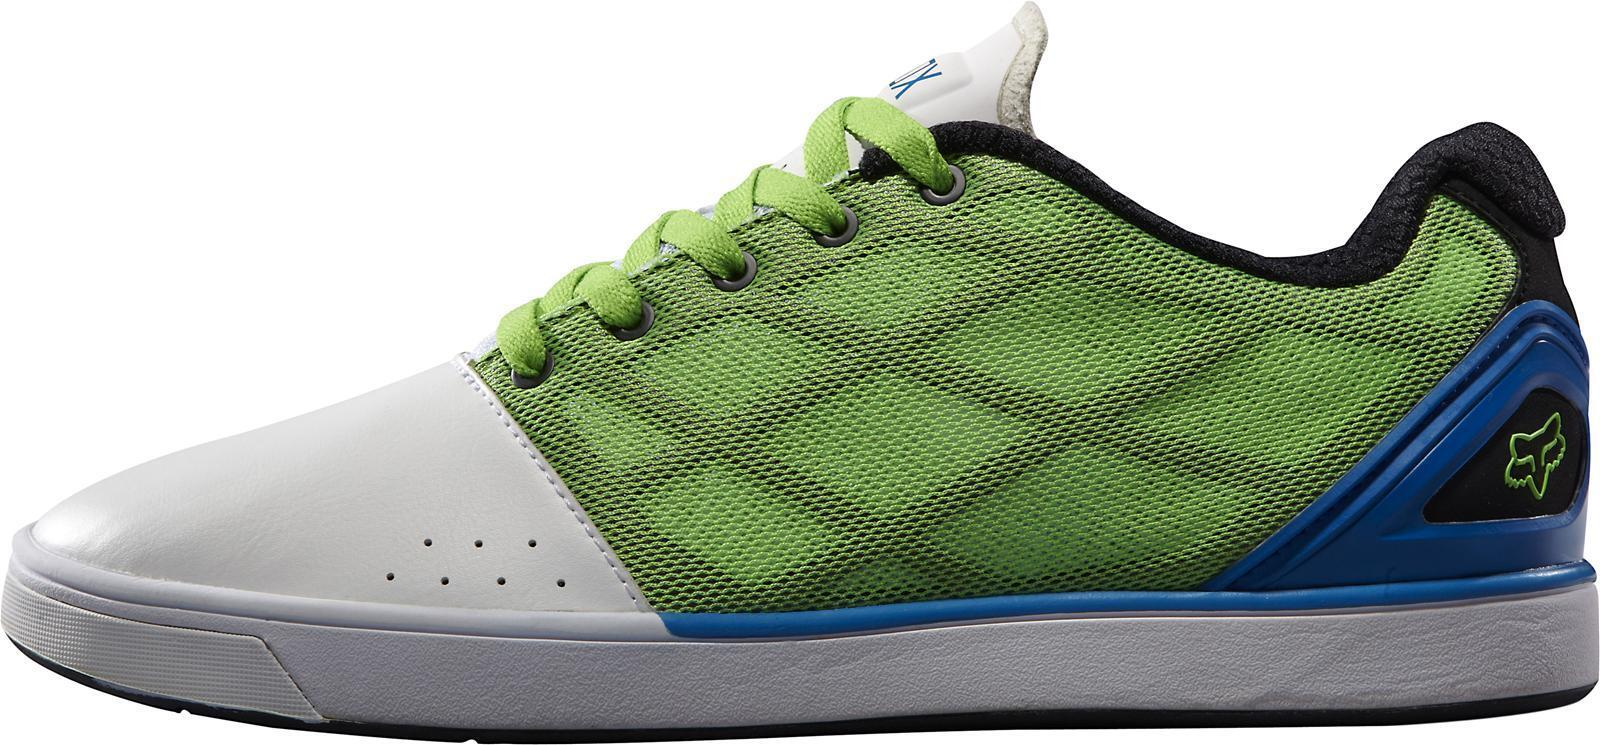 Fox Racing 05616-076 Motion Varial Mn' (M) blancoo verde Sintético Zapatos informales